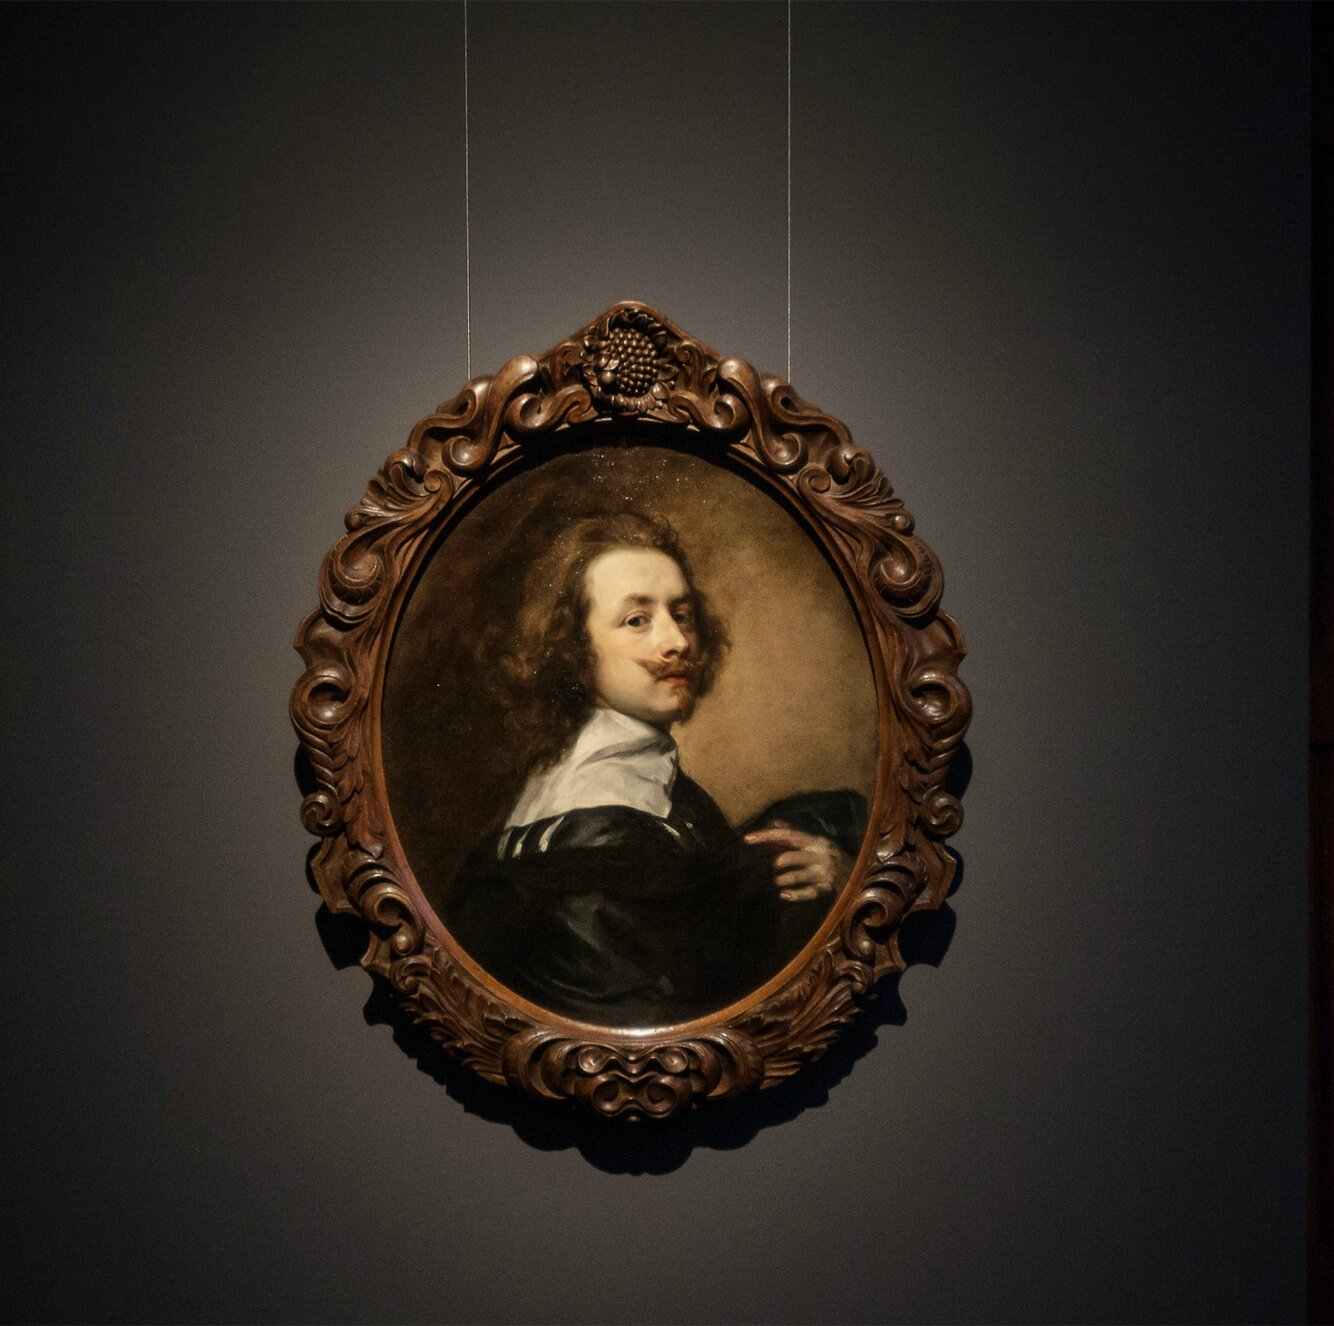 Rubens House exhibits recently discovered self-portrait by Anthony van Dyck